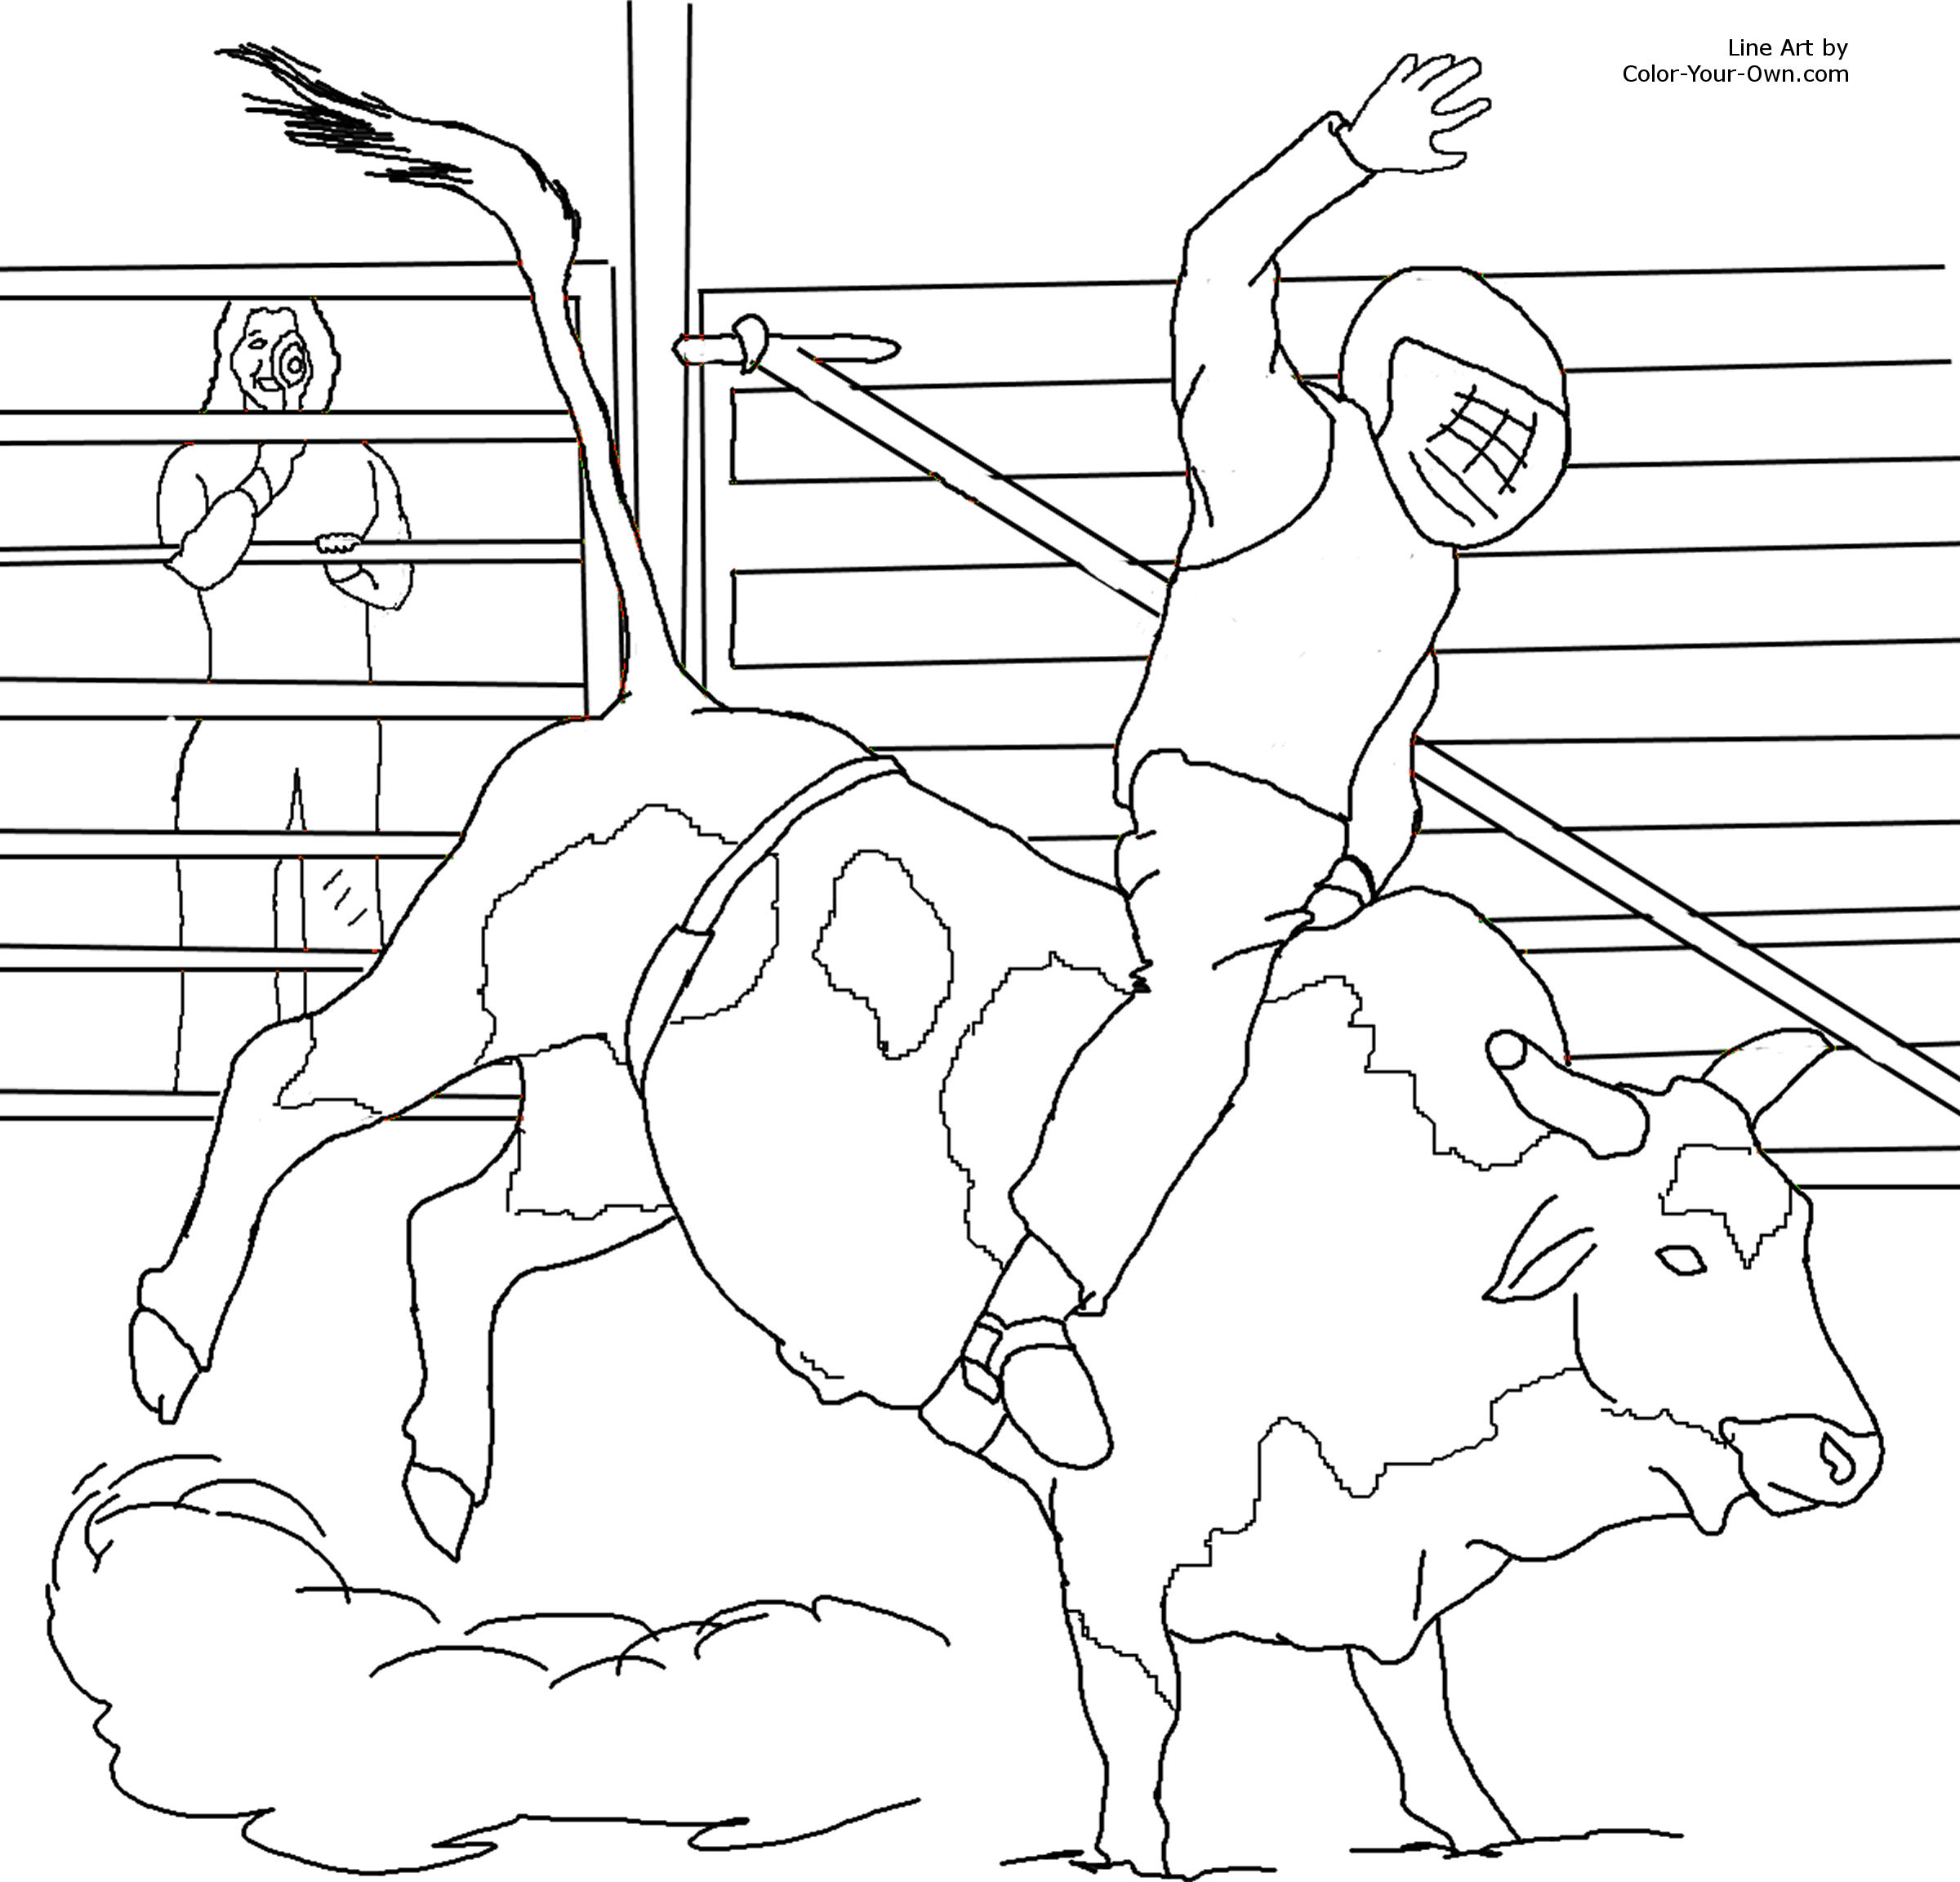 free coloring pages of pbr bull Benny the Bull Coloring Pages  Bull Coloring Pictures